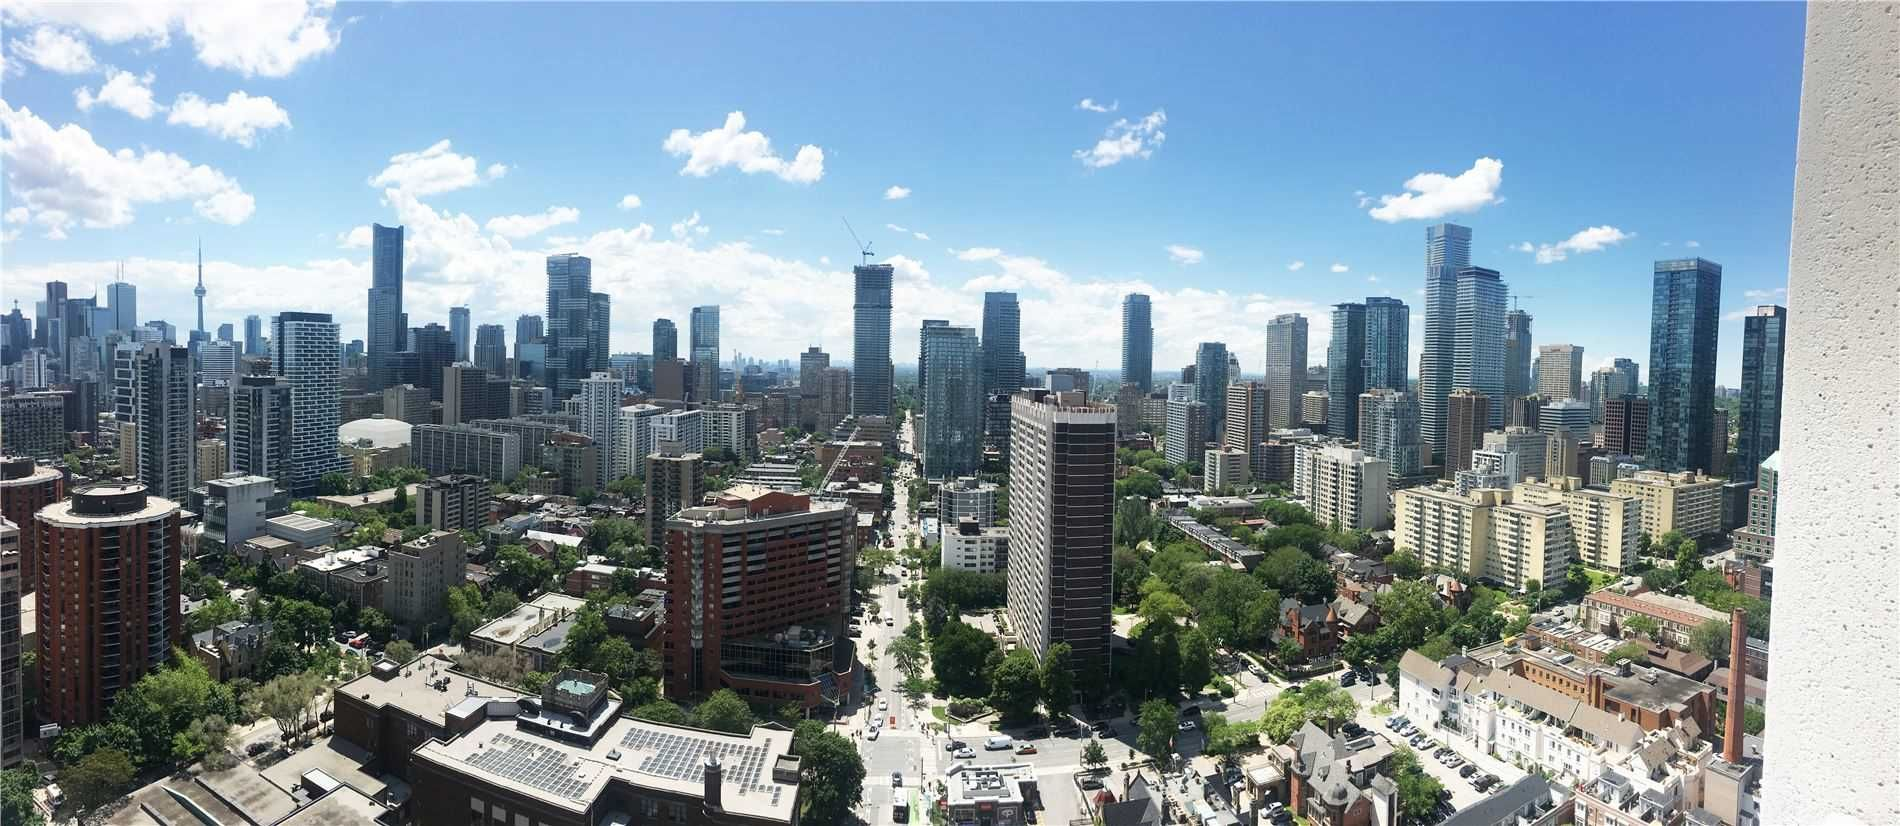 Main Photo: 3001 120 Homewood Avenue in Toronto: North St. James Town Condo for lease (Toronto C08)  : MLS®# C4900920